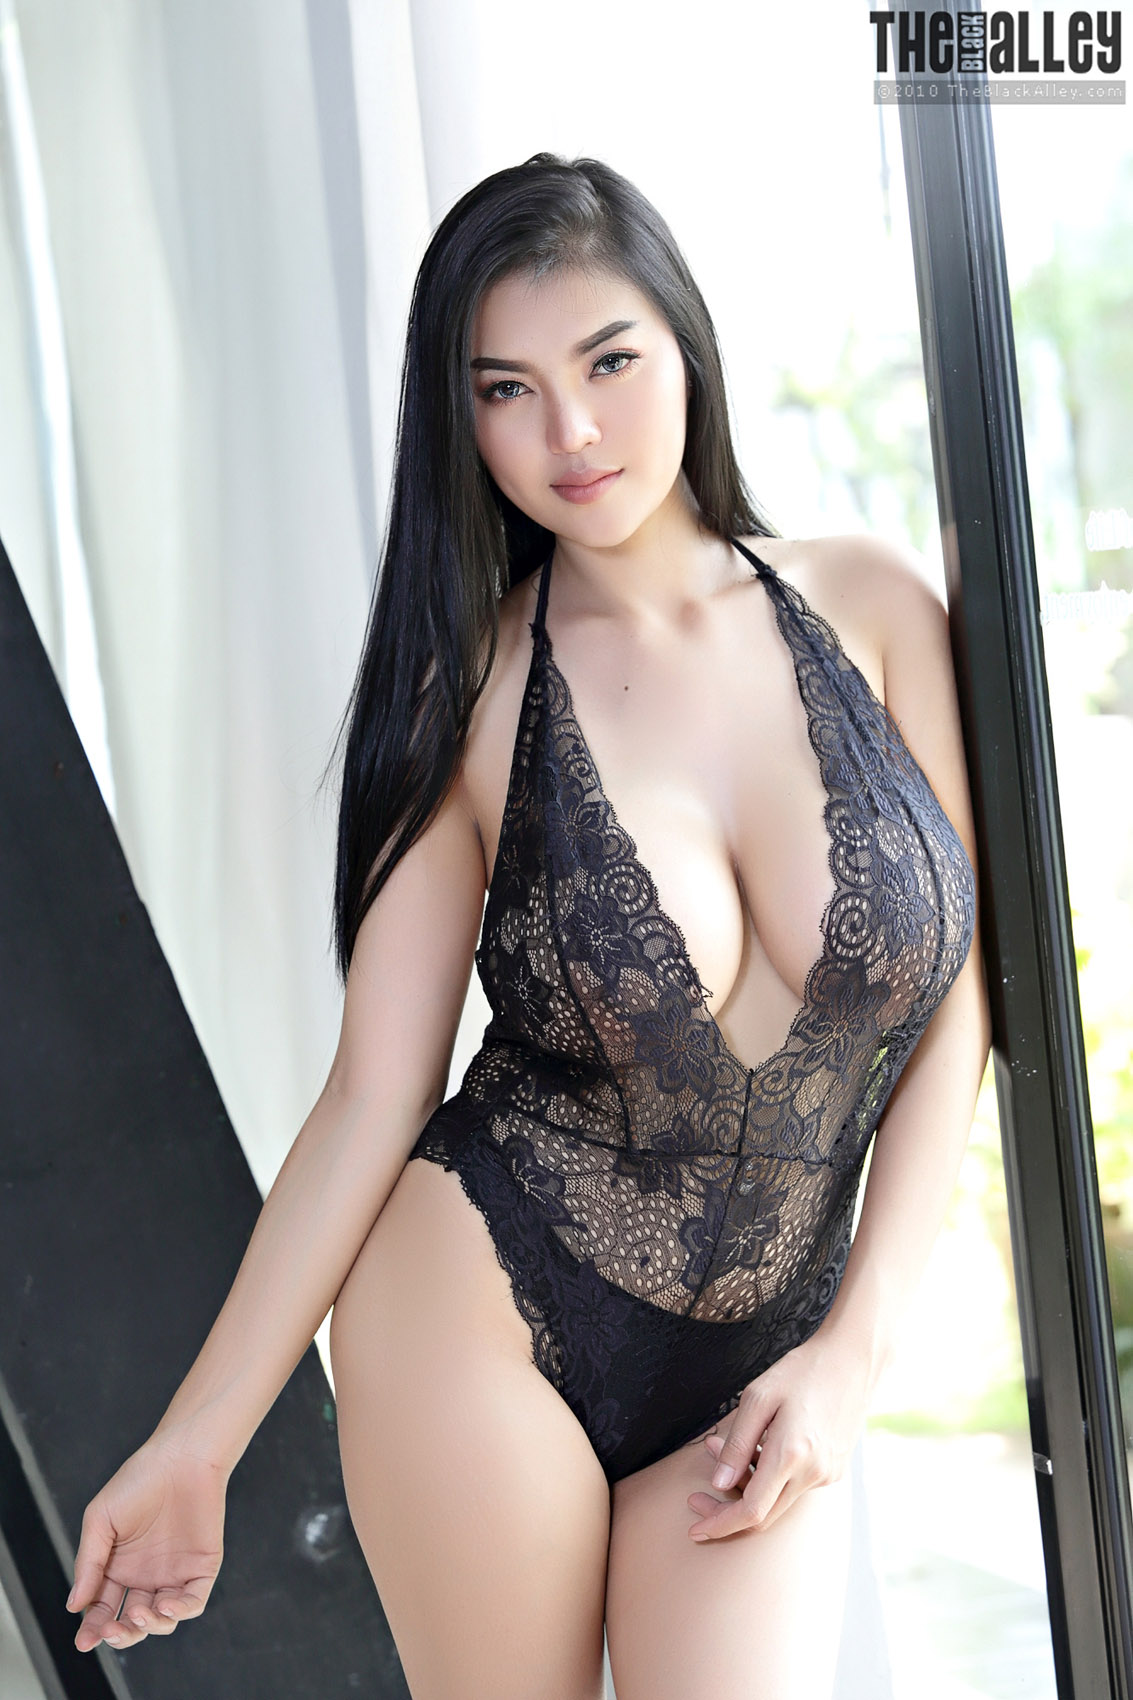 Nude 12 Pictures Pitta Sexy Lingerie The Black Alley - Bunnylustcom-4931